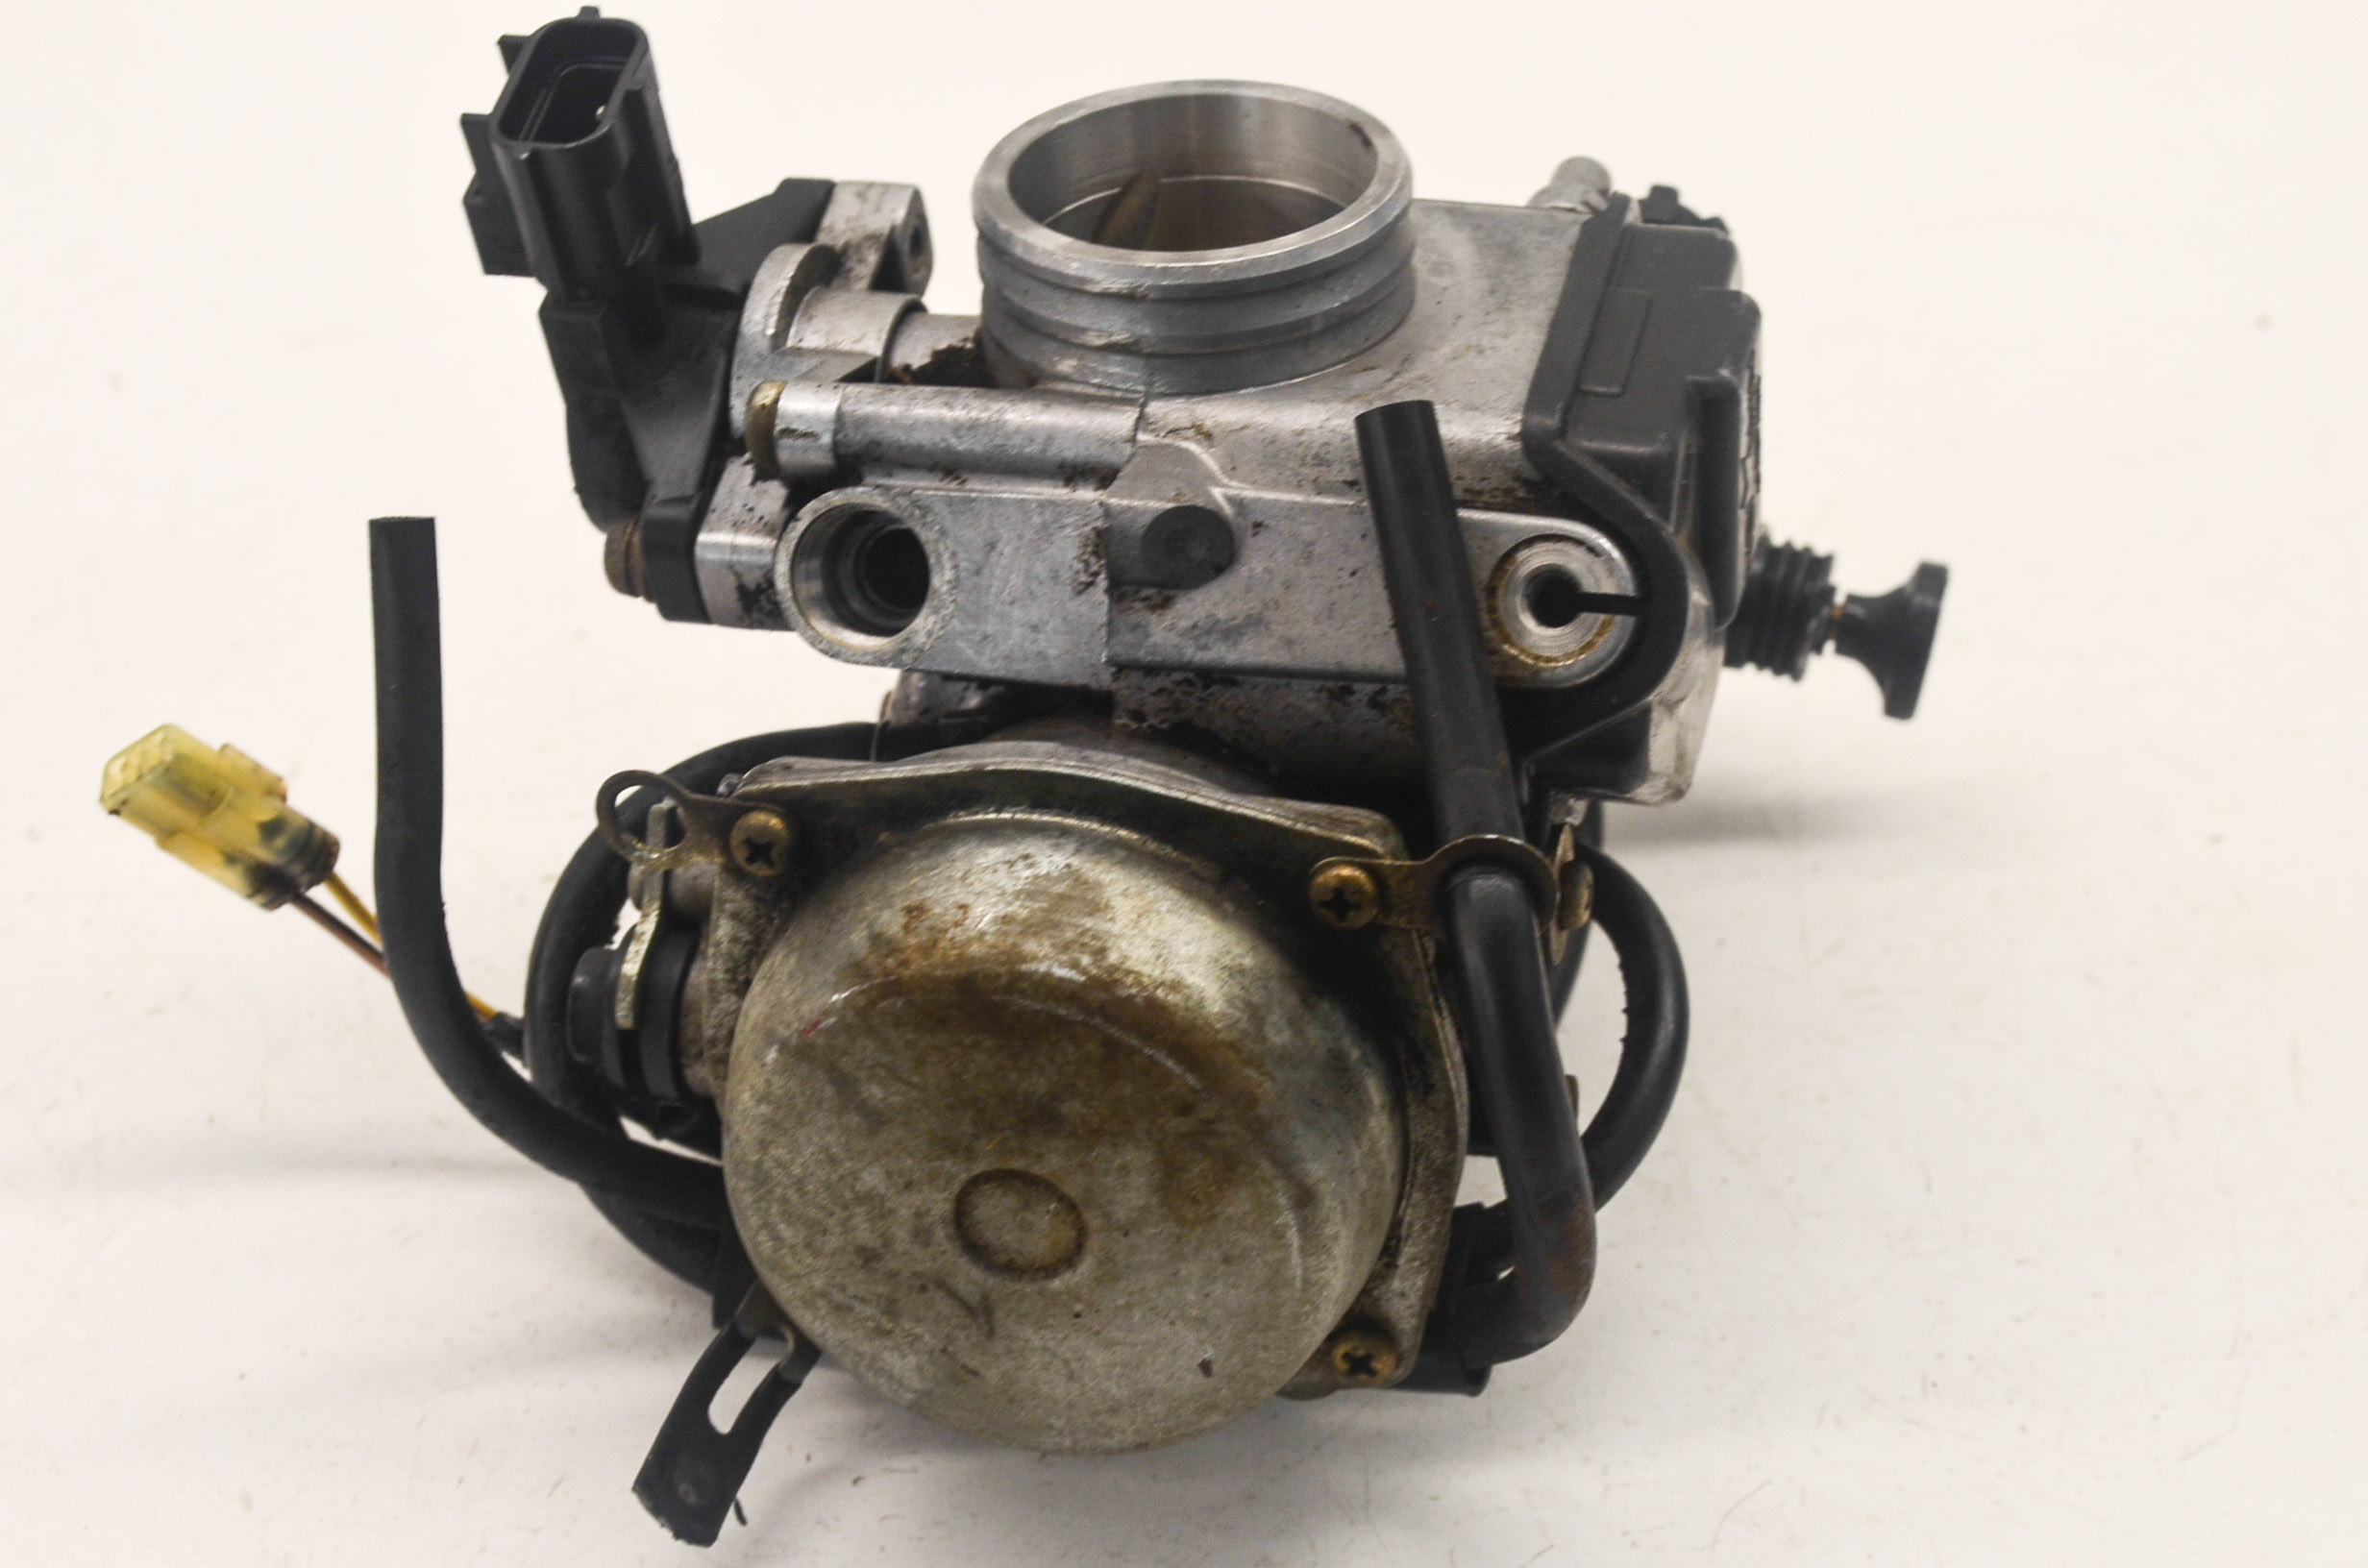 01 Honda Rubicon 500 4x4 Carburetor Carb Trx500fa